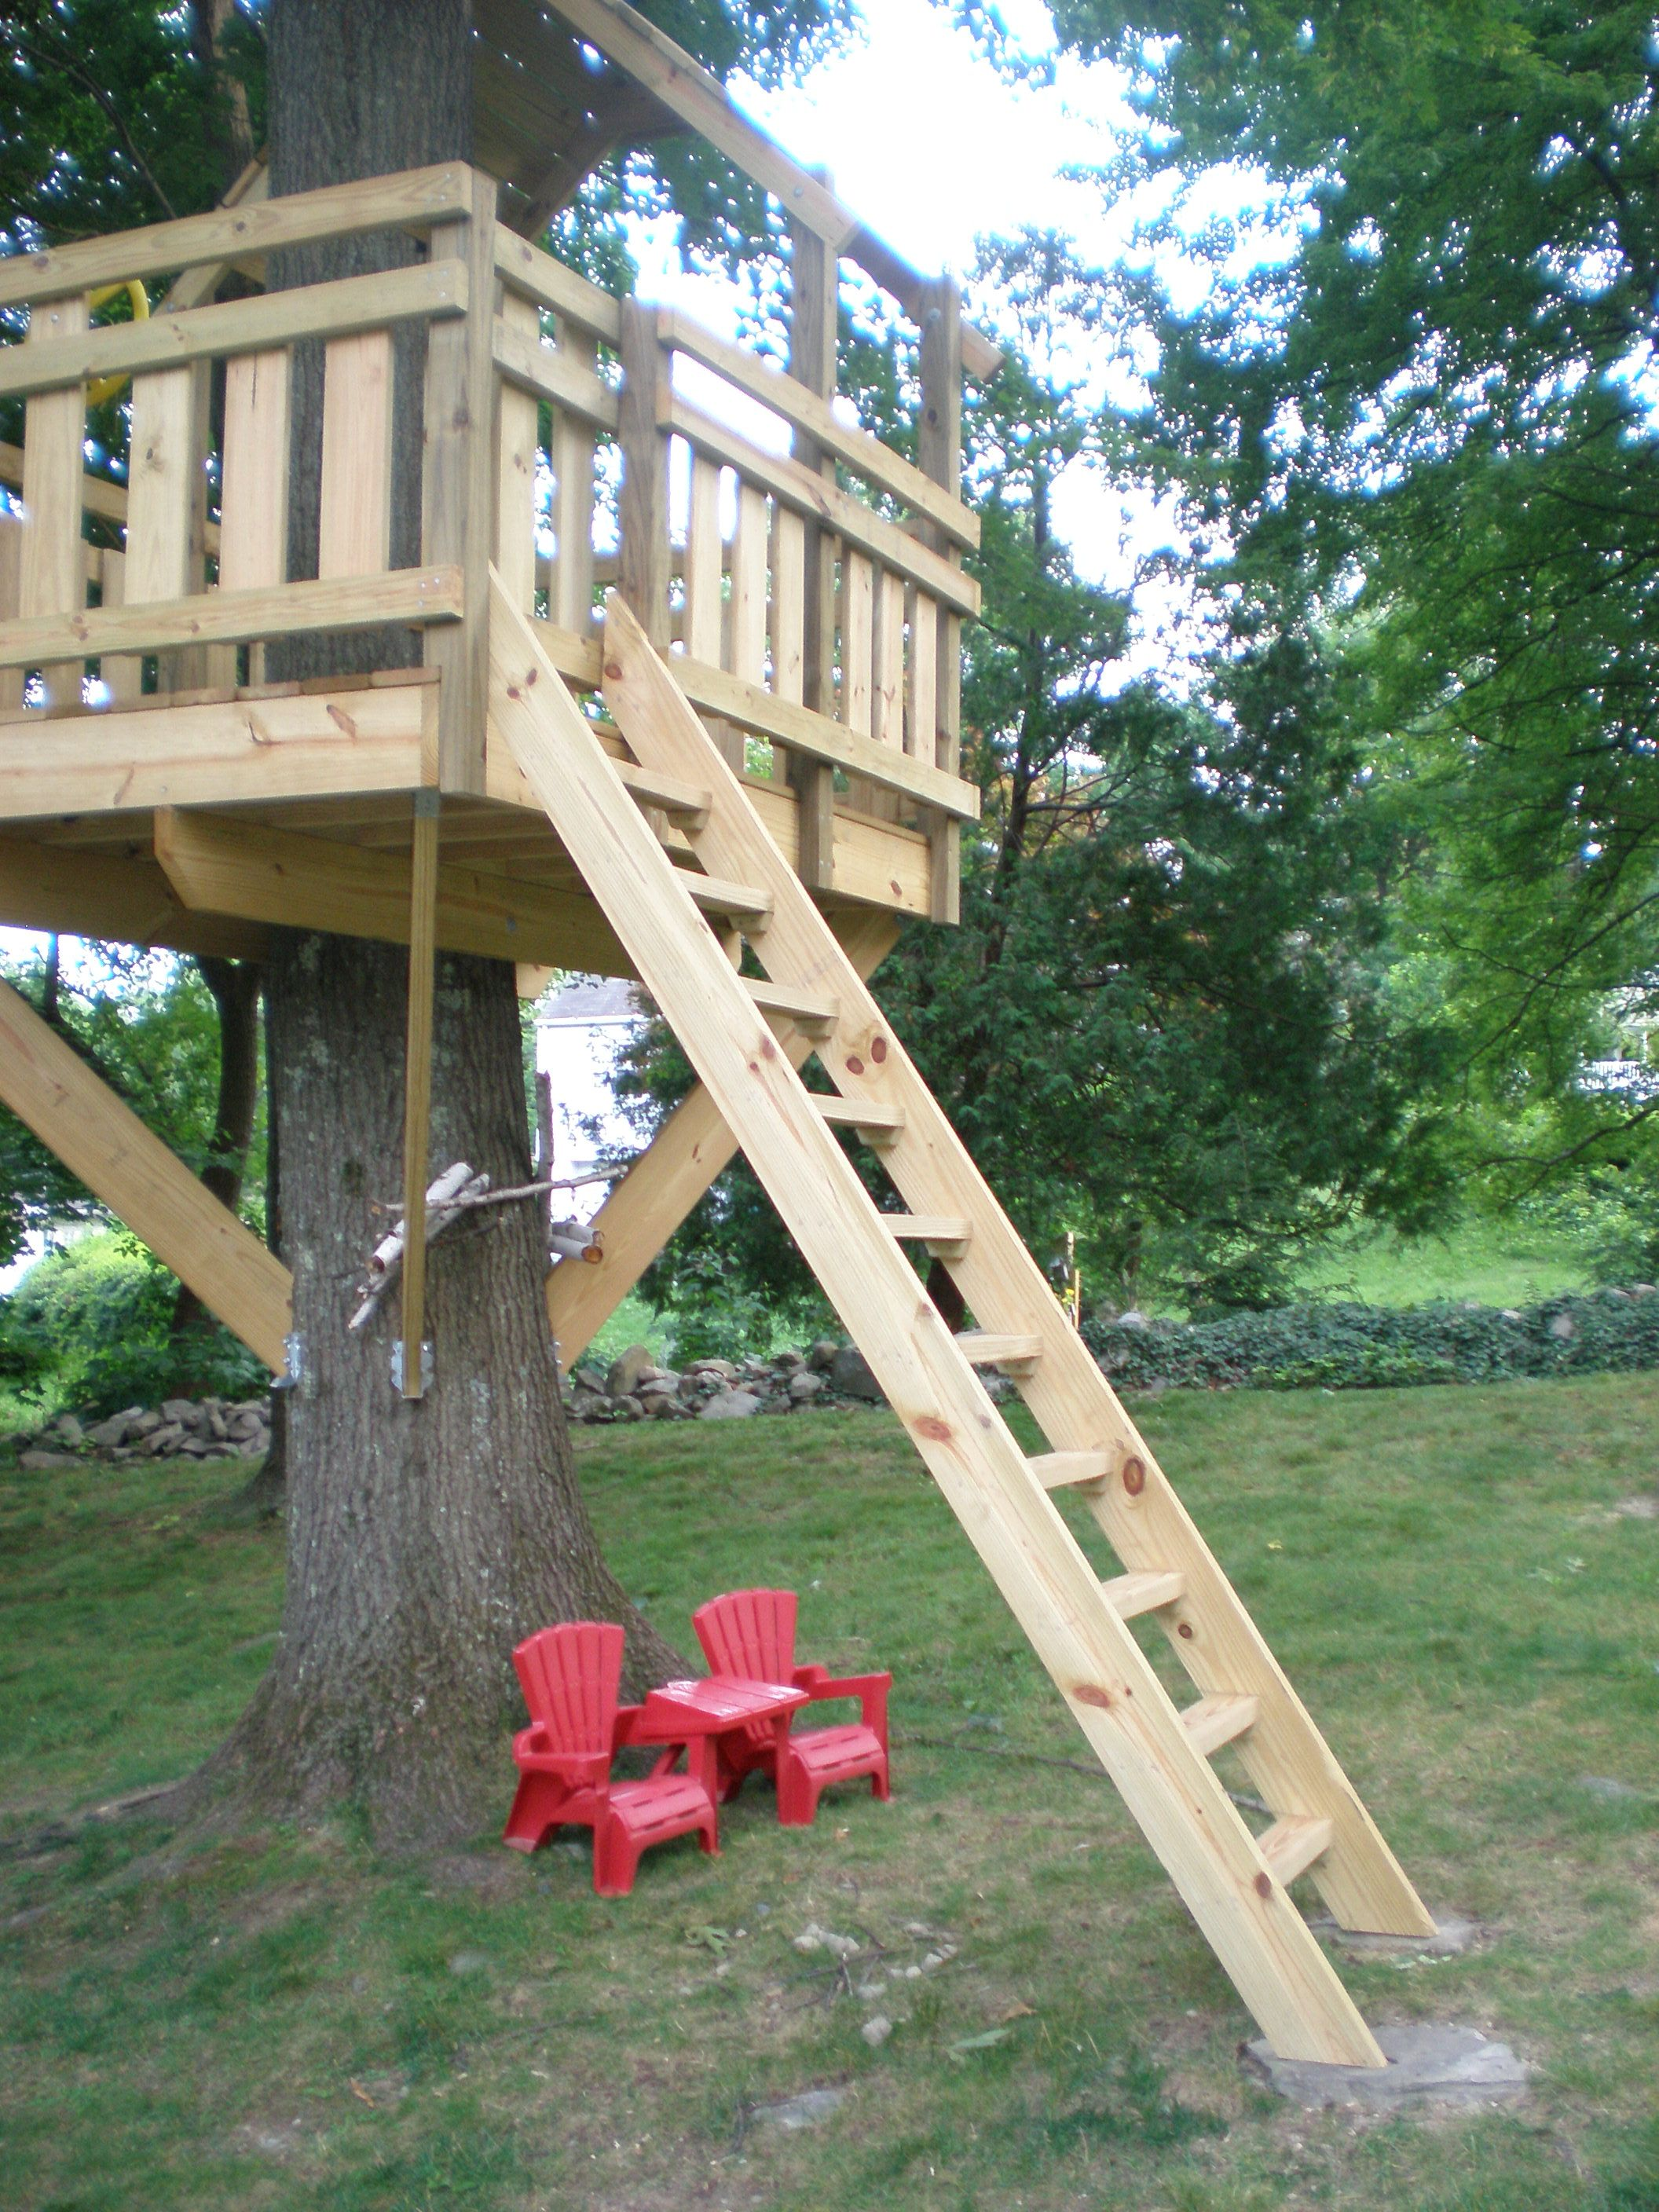 Tree Fort Ladder Gate Roof Finale Tree House Diy Tree House